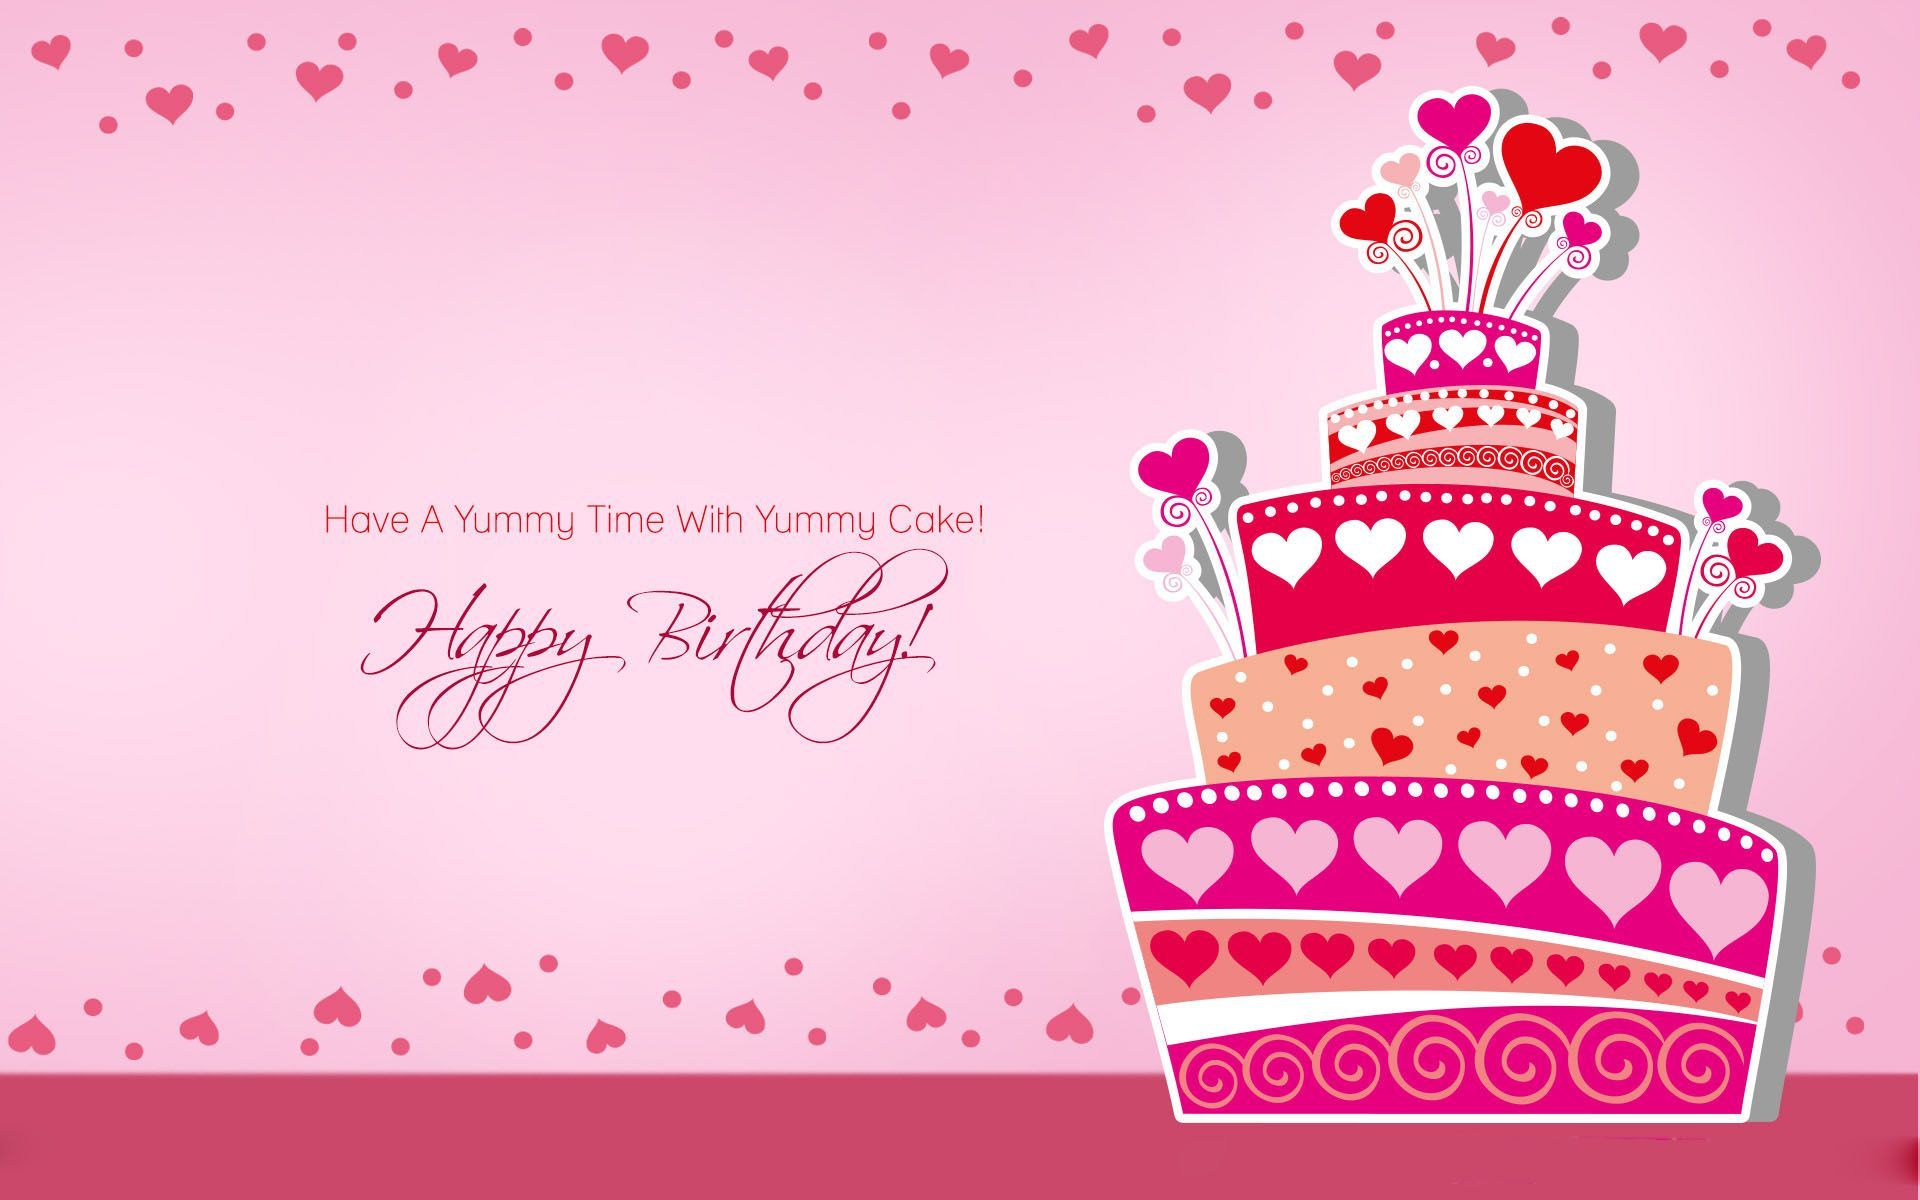 Happy Birthday Wallpaper and